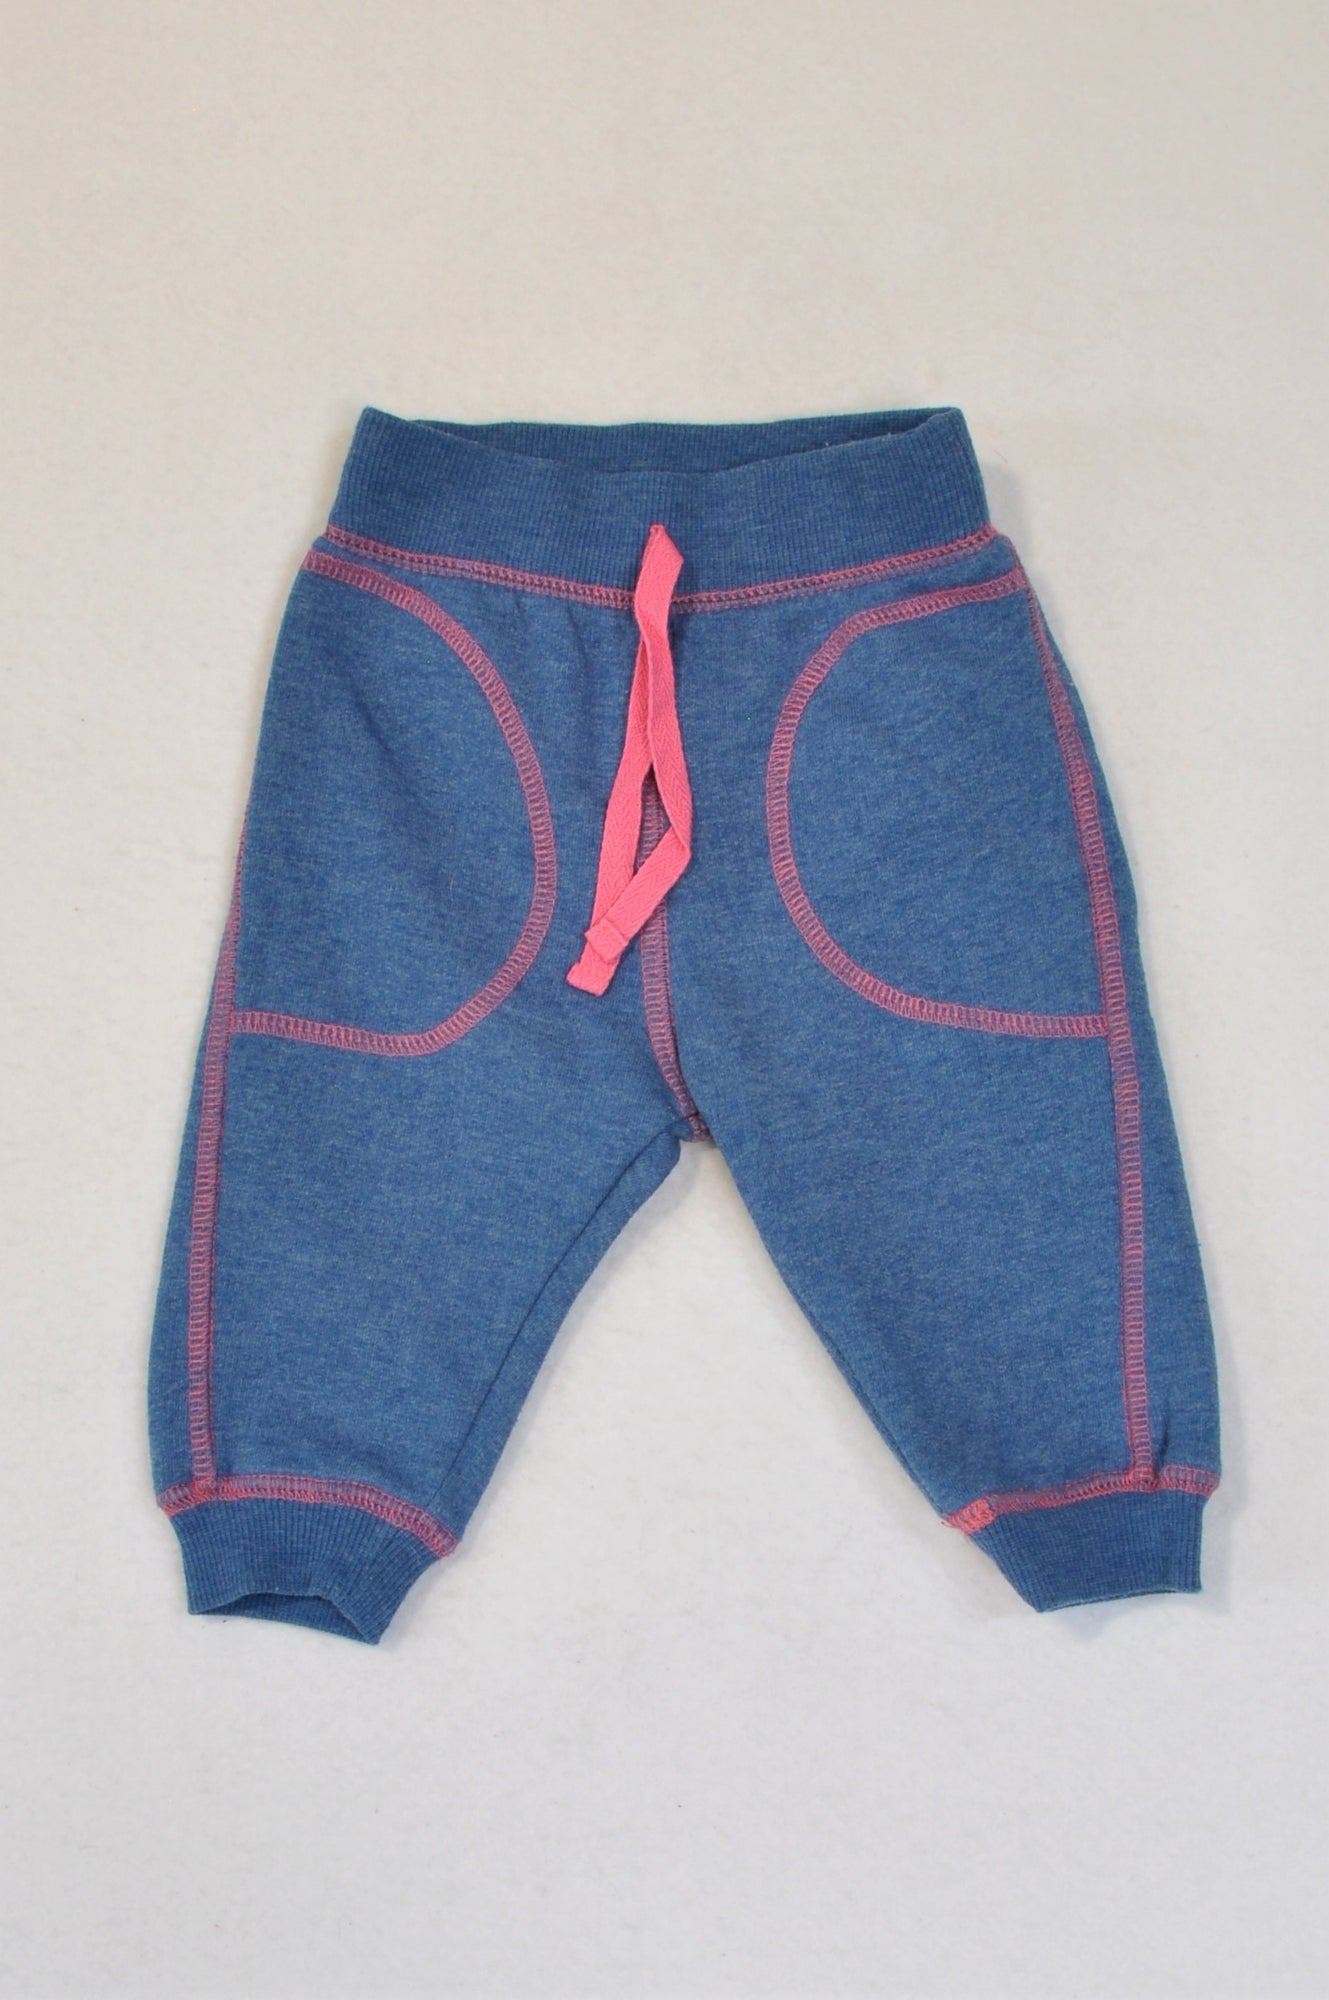 Woolworths Dusty Blue & Pink Stitch Track Pants Girls 3-6 months